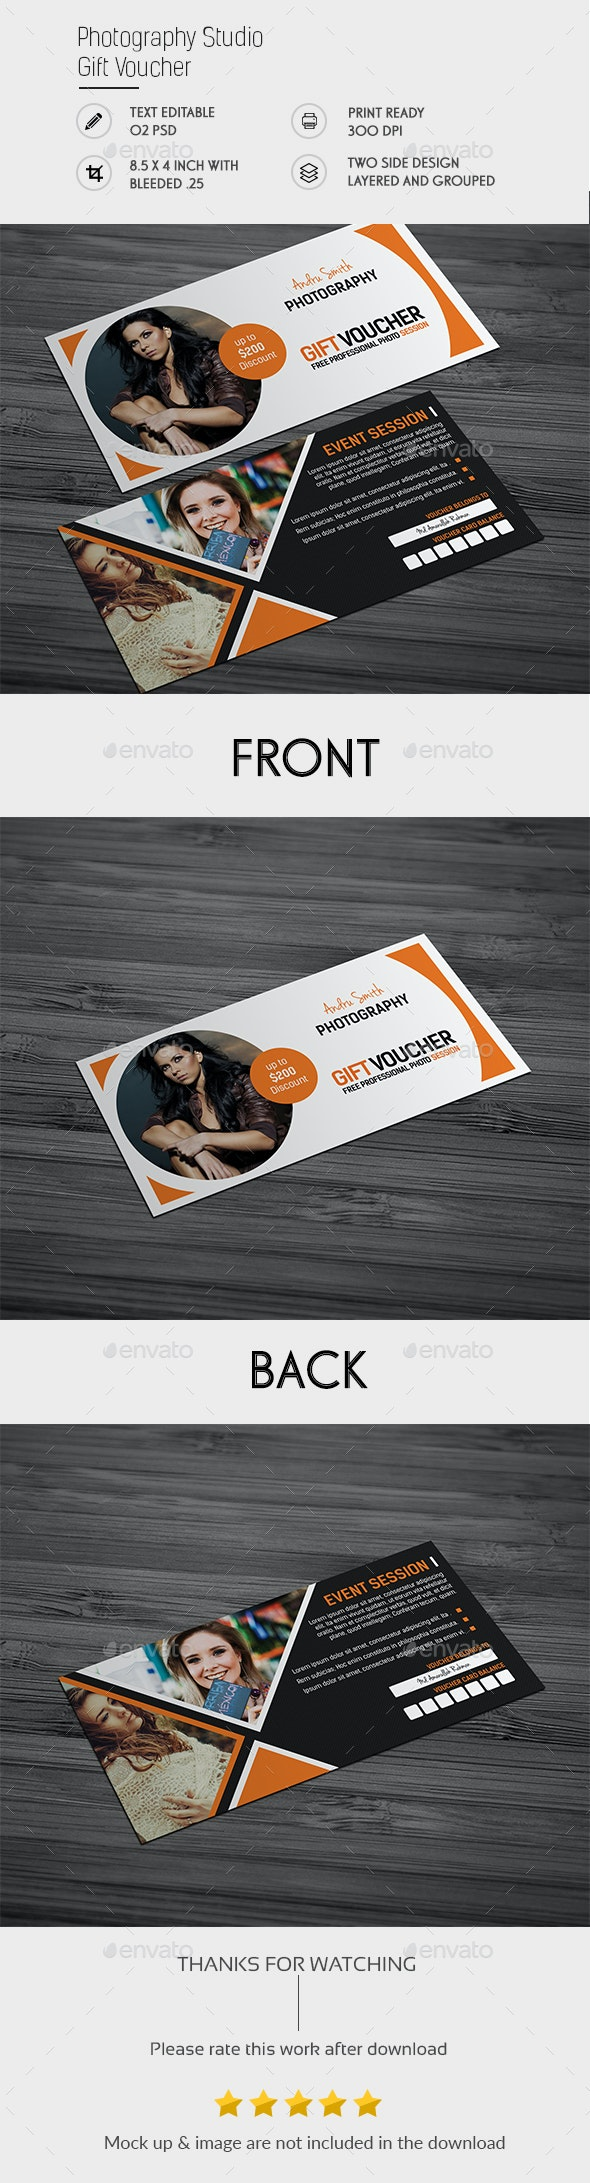 Photography Studio Gift Voucher - Greeting Cards Cards & Invites